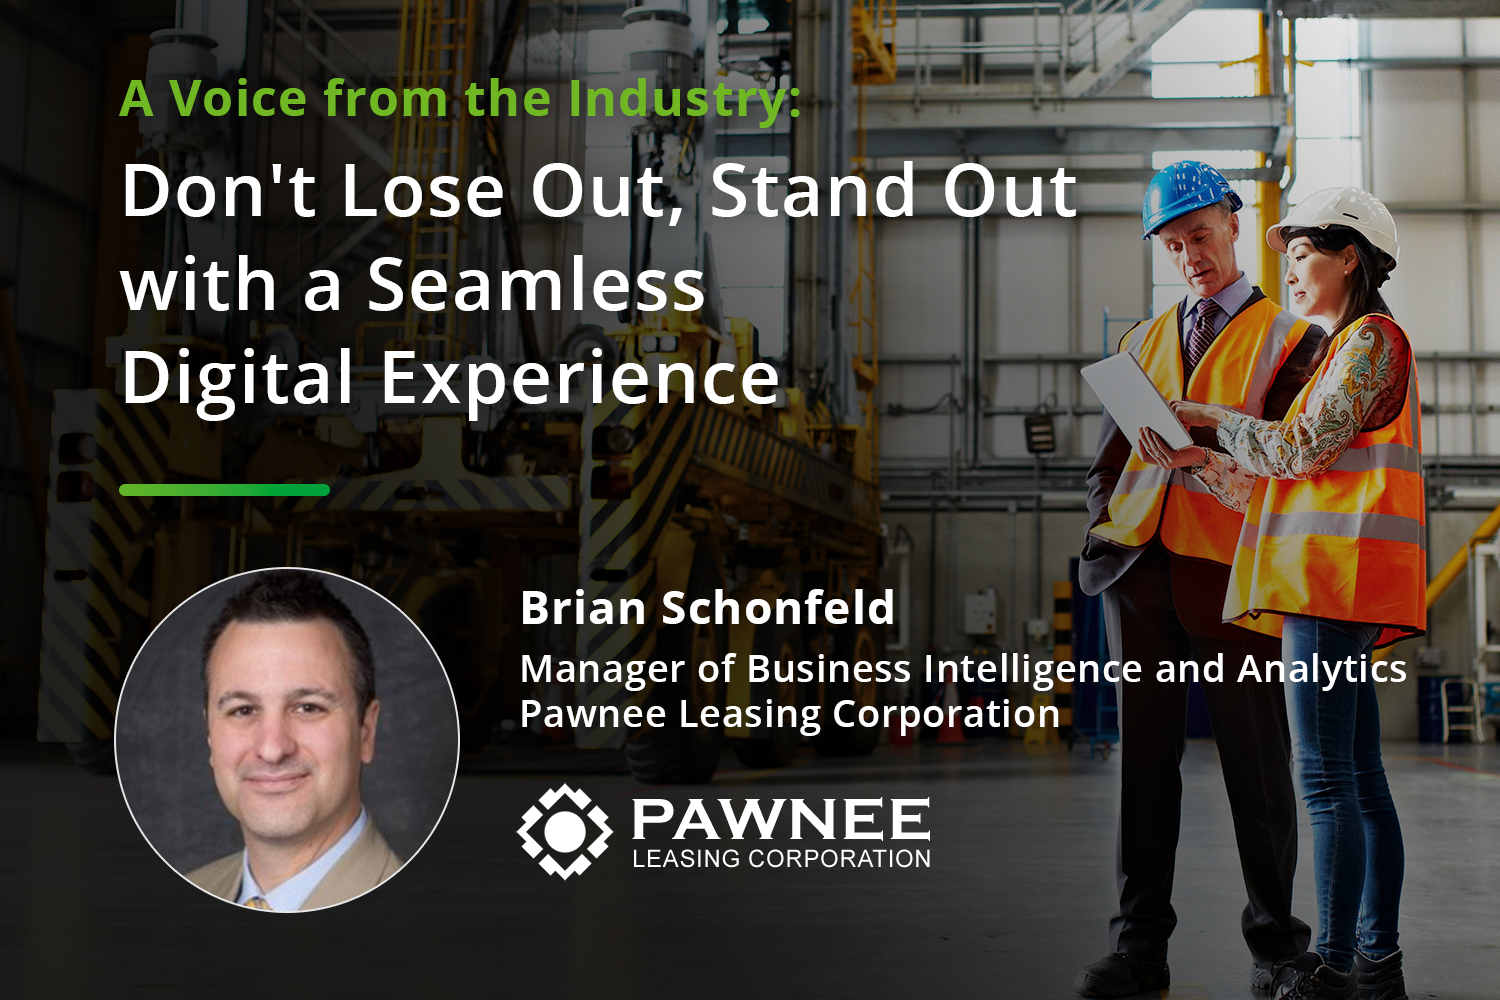 Voice of the Industry: Brian Schonfeld, Manager of Business Intelligence and Analytics, Pawnee Leasing Corporation